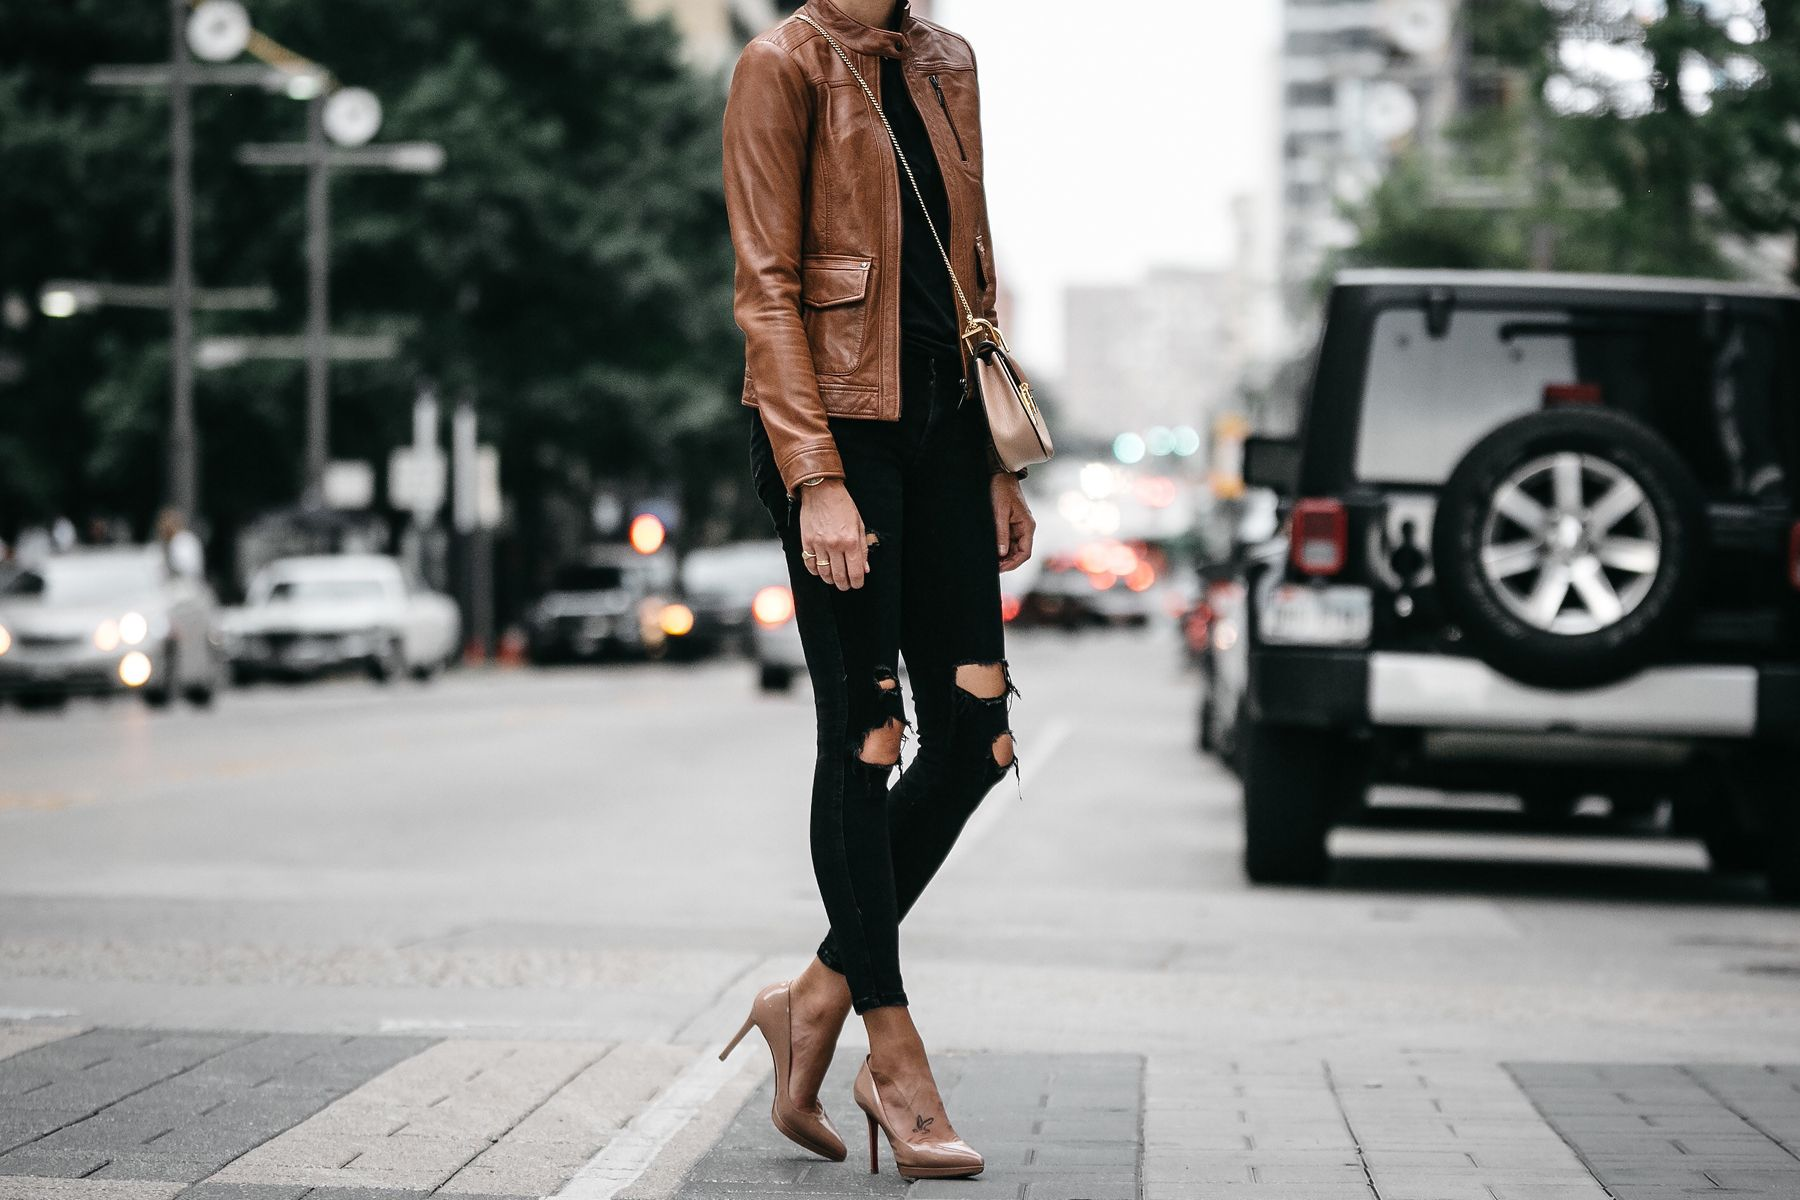 Tan Leather Moto Jacket Black Ripped Skinny Jeans Outfit Chloe Drew Handbag Christian Louboutin N Fashion Jackson Moto Jacket Outfit Leather Moto Jacket Outfit [ 1200 x 1800 Pixel ]